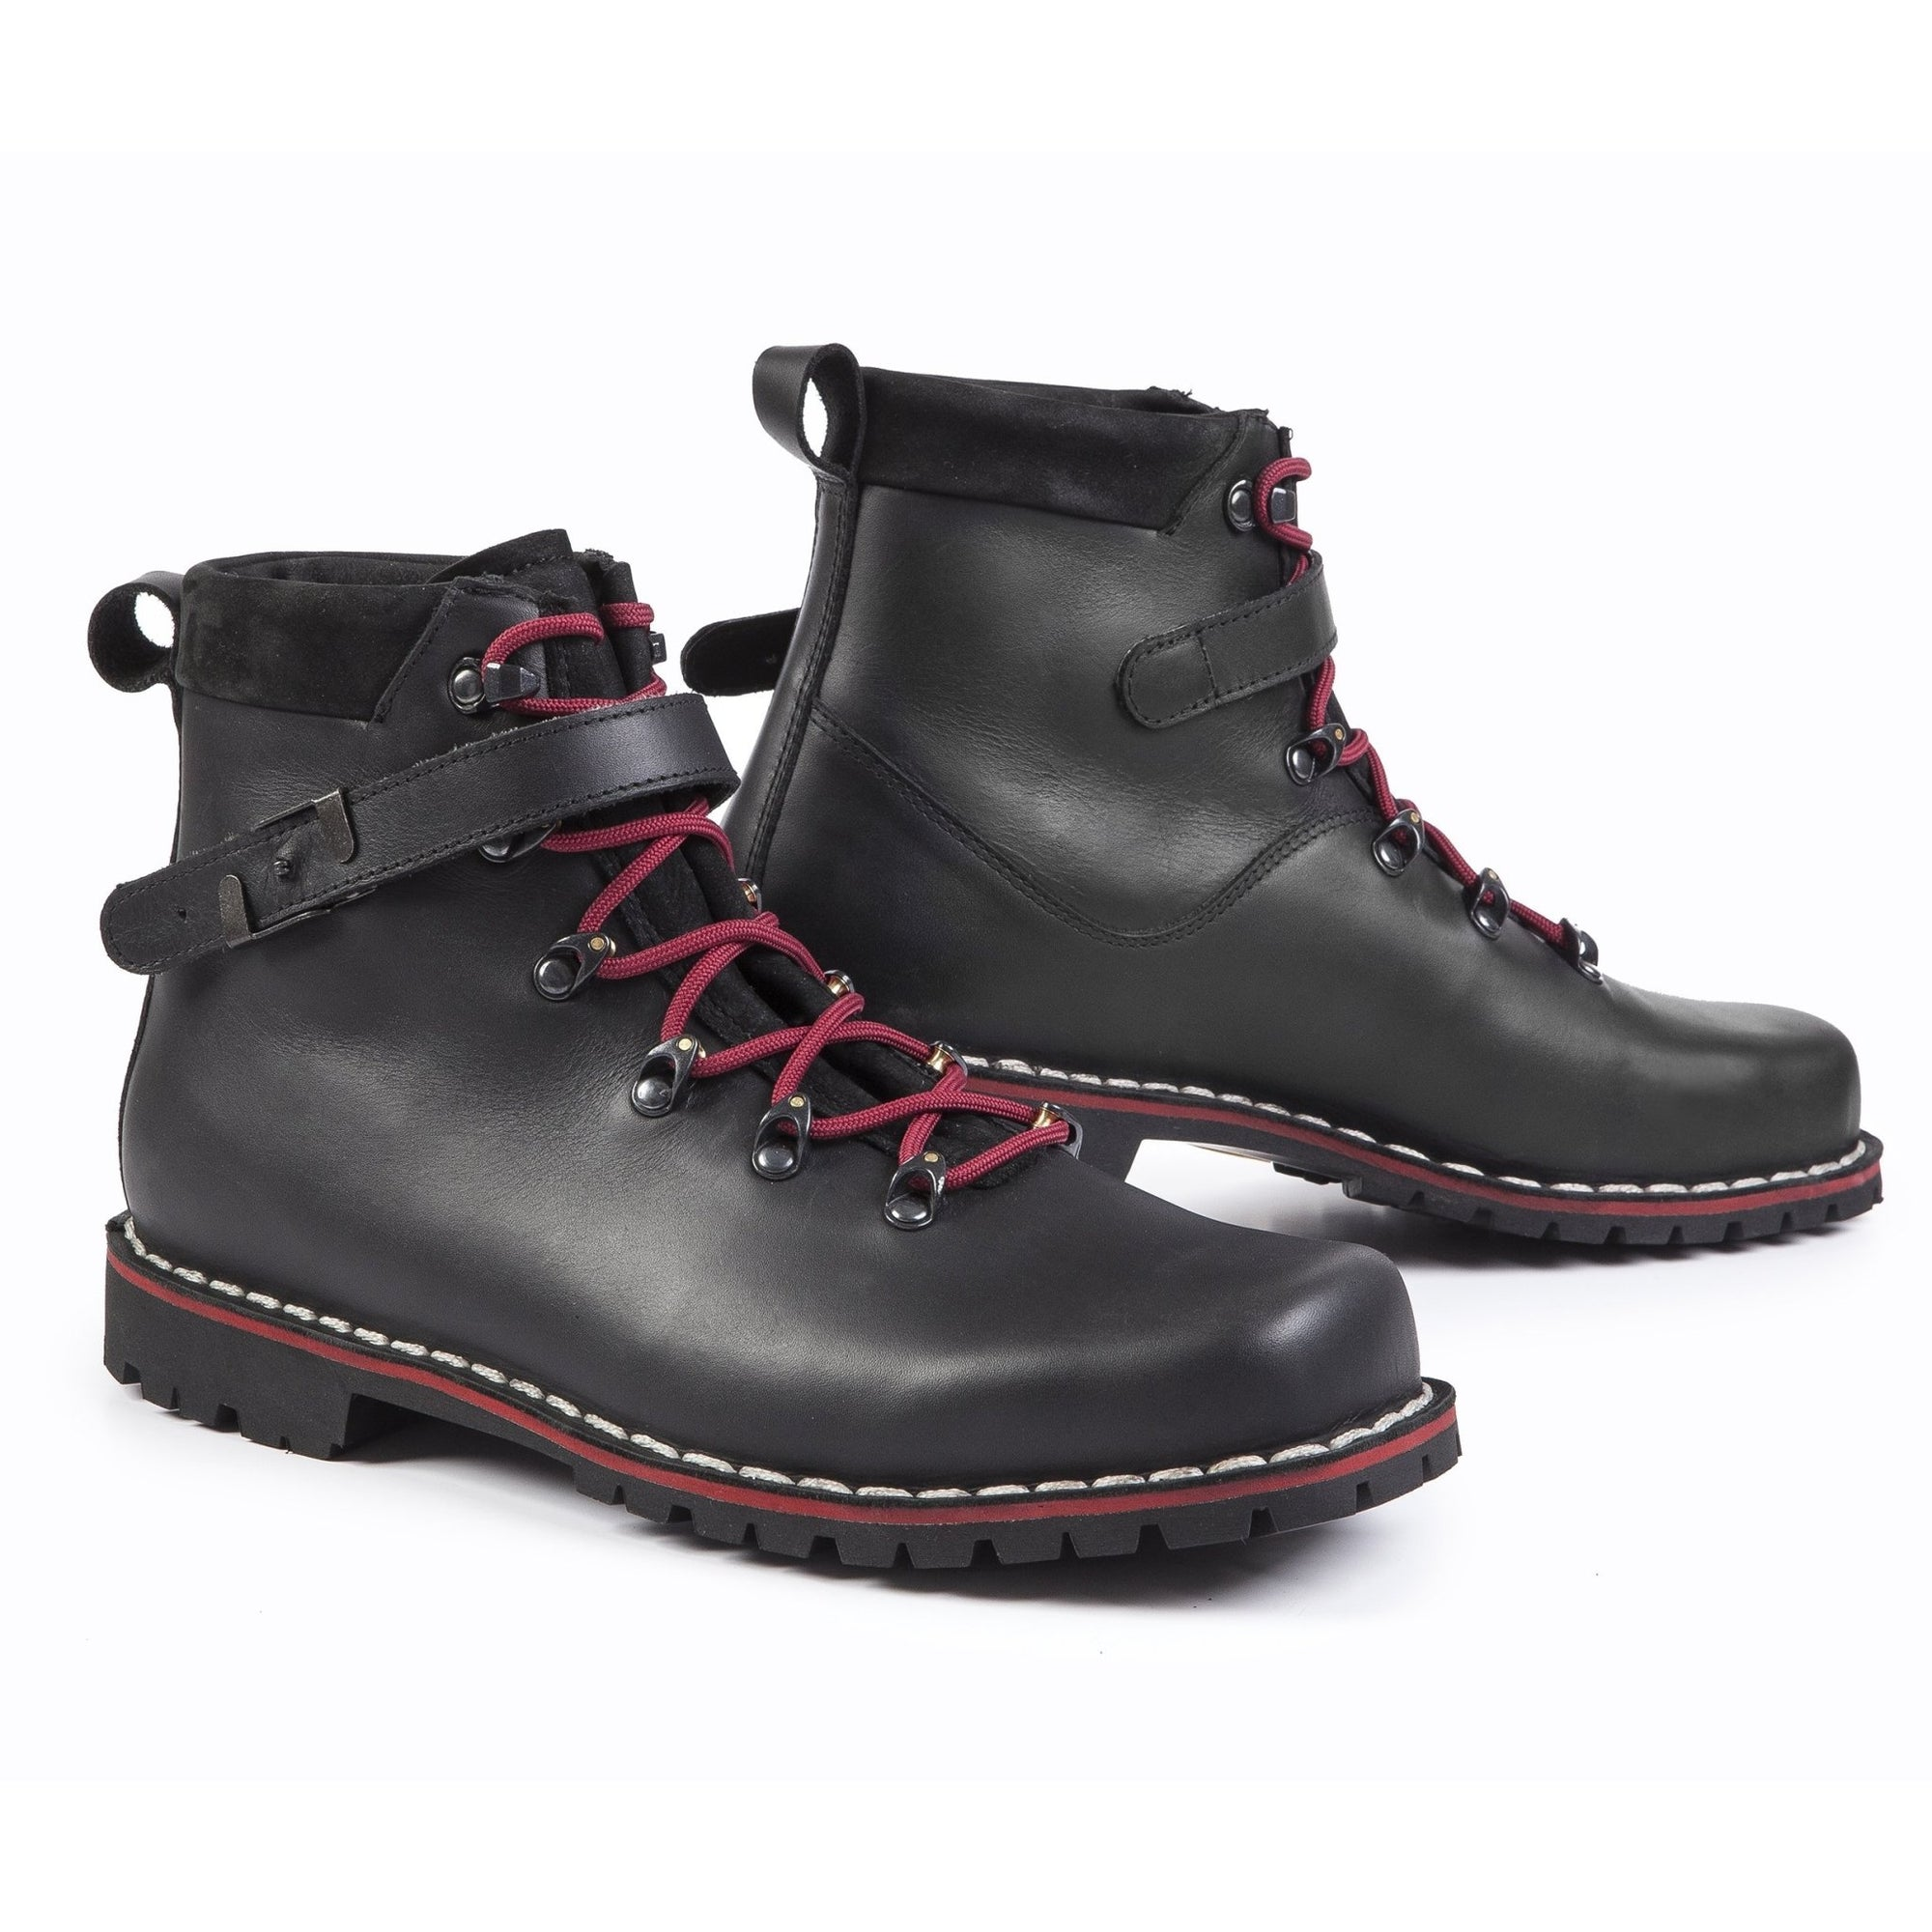 Stylmartin - Stylmartin Red Rebel Urban in Black - Boots - Salt Flats Clothing